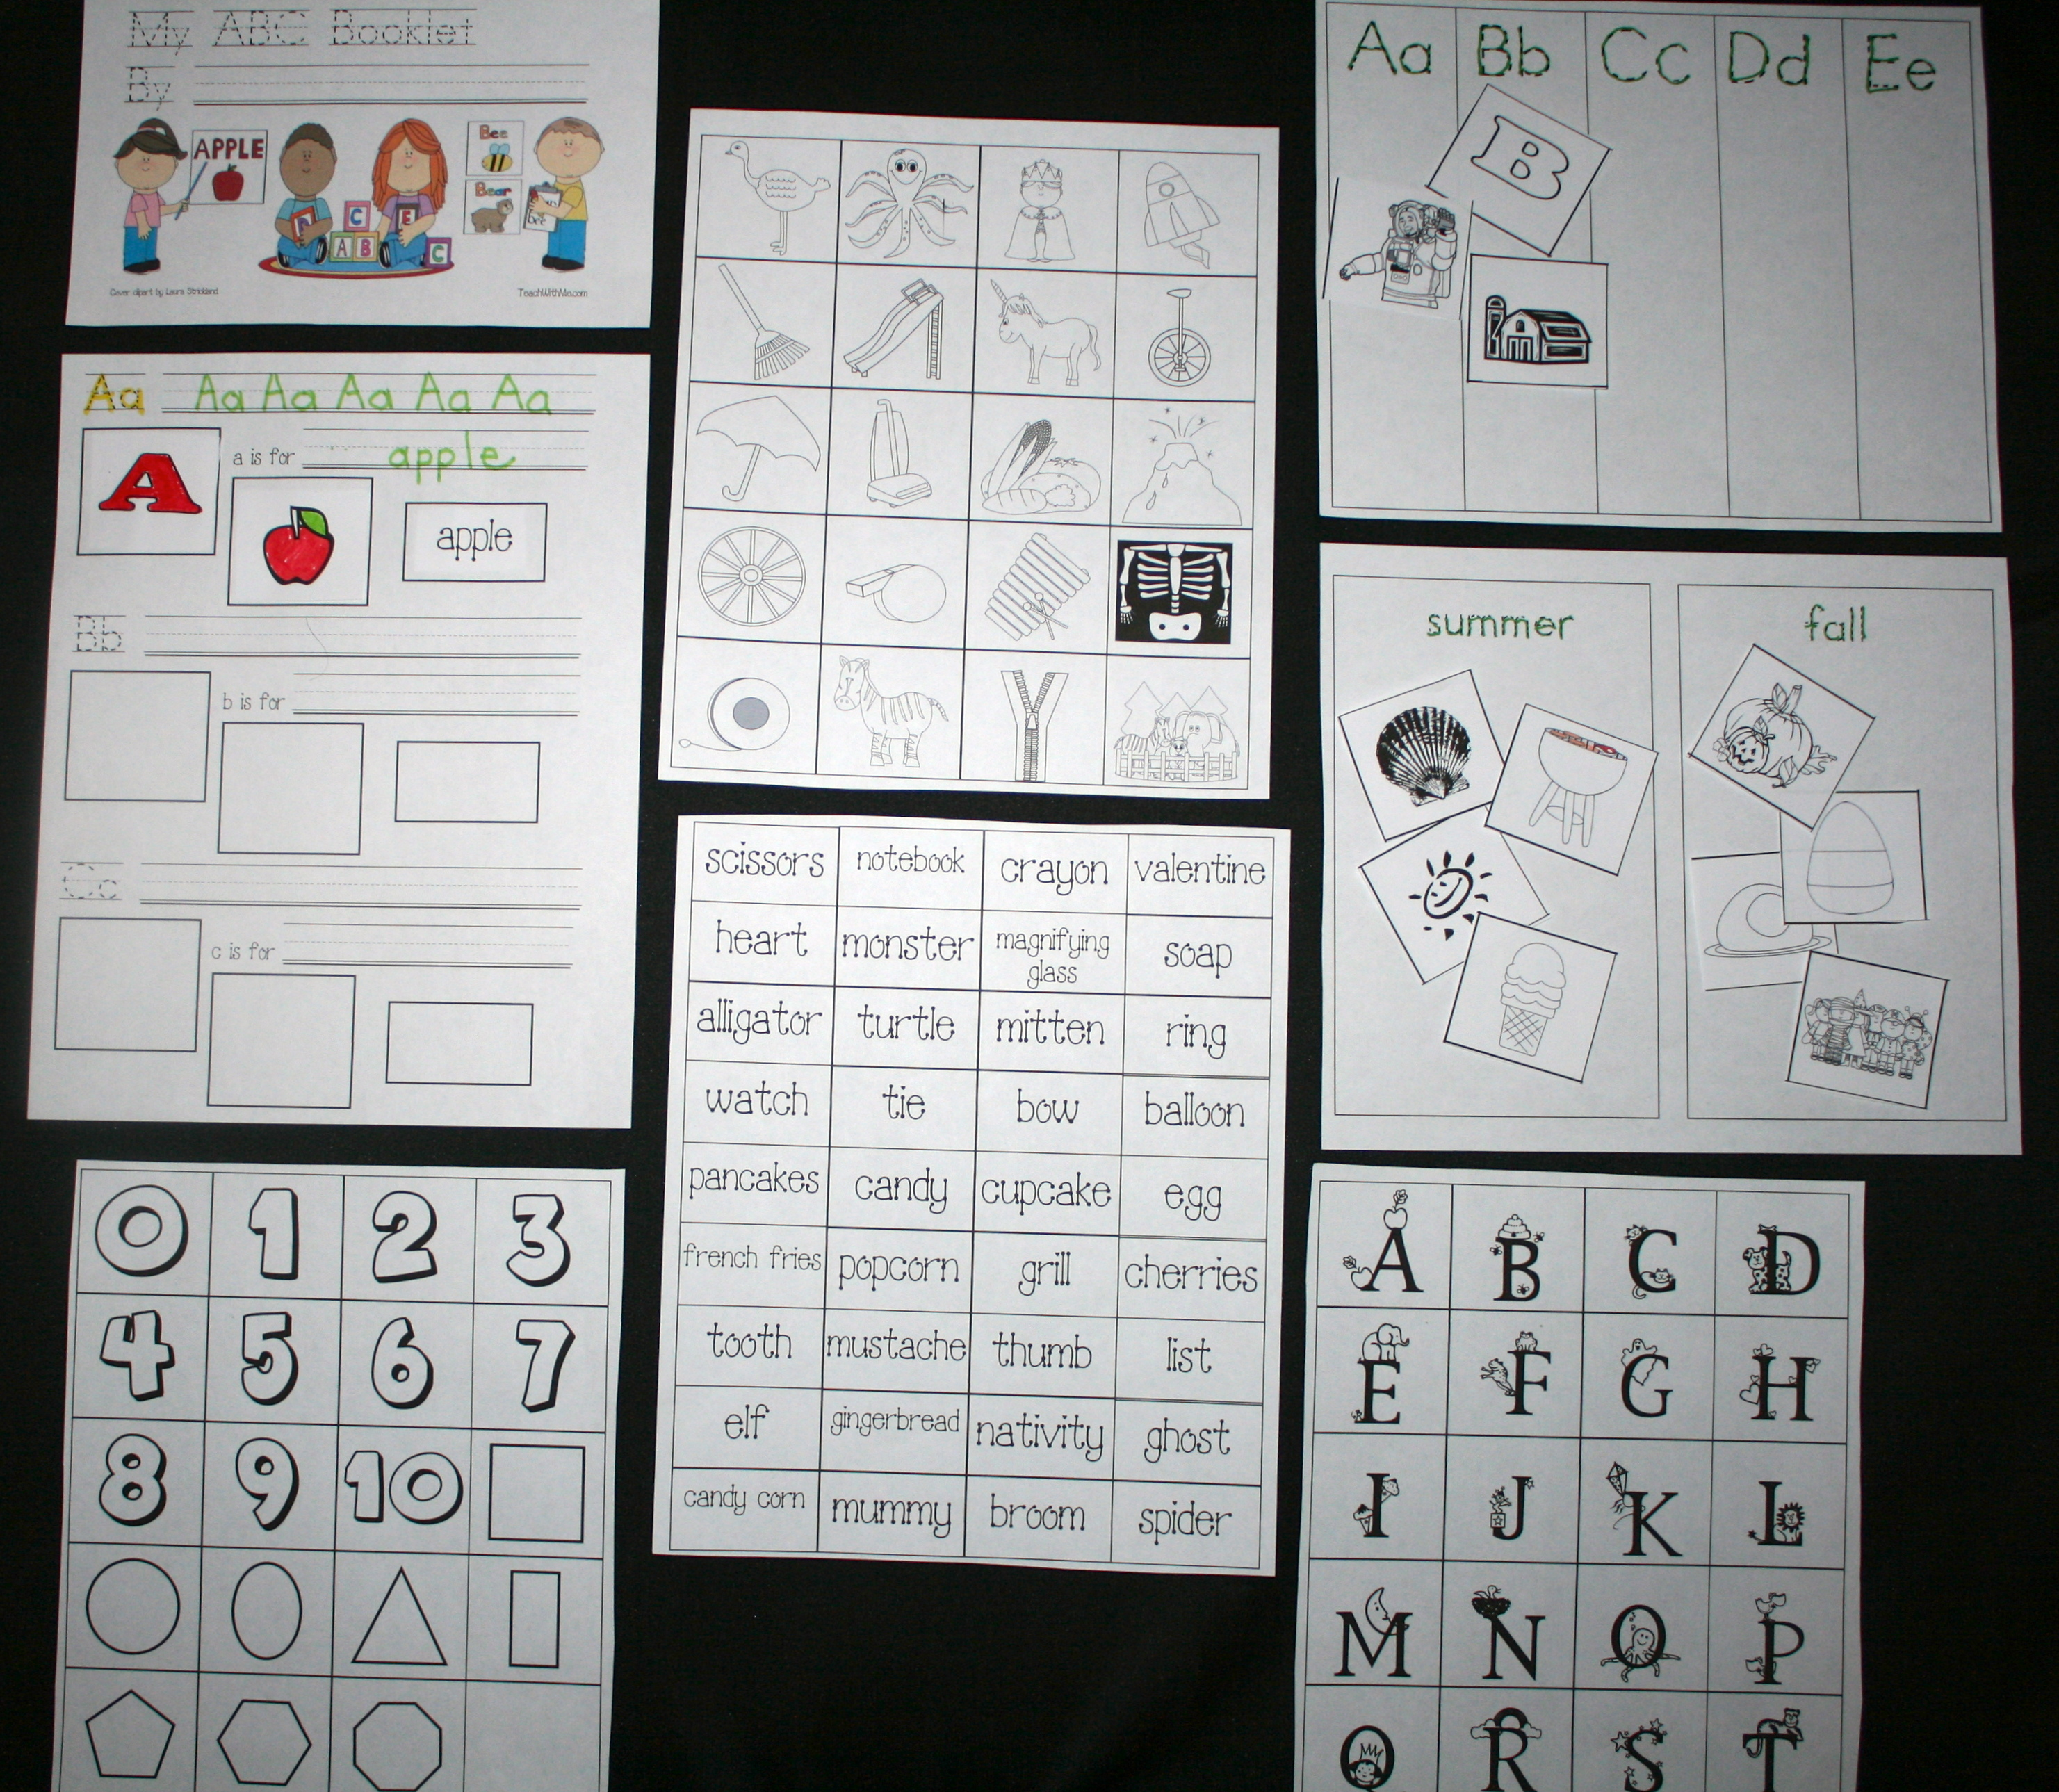 FREE common core lessons, common core lessons for kindergarten, common core lessons for 1st grade, alphabet activirties, alphabet games, upper and lower case letter matching, ABC booklet, Dolch word activities, Dolch nouns, Dolch word cards, CVC activities, CVC word cards, CVC lessons, word wall activities, sight word activities, alphabet picture cards, 439 alphabet picture cards, 439 alphabet word cards,